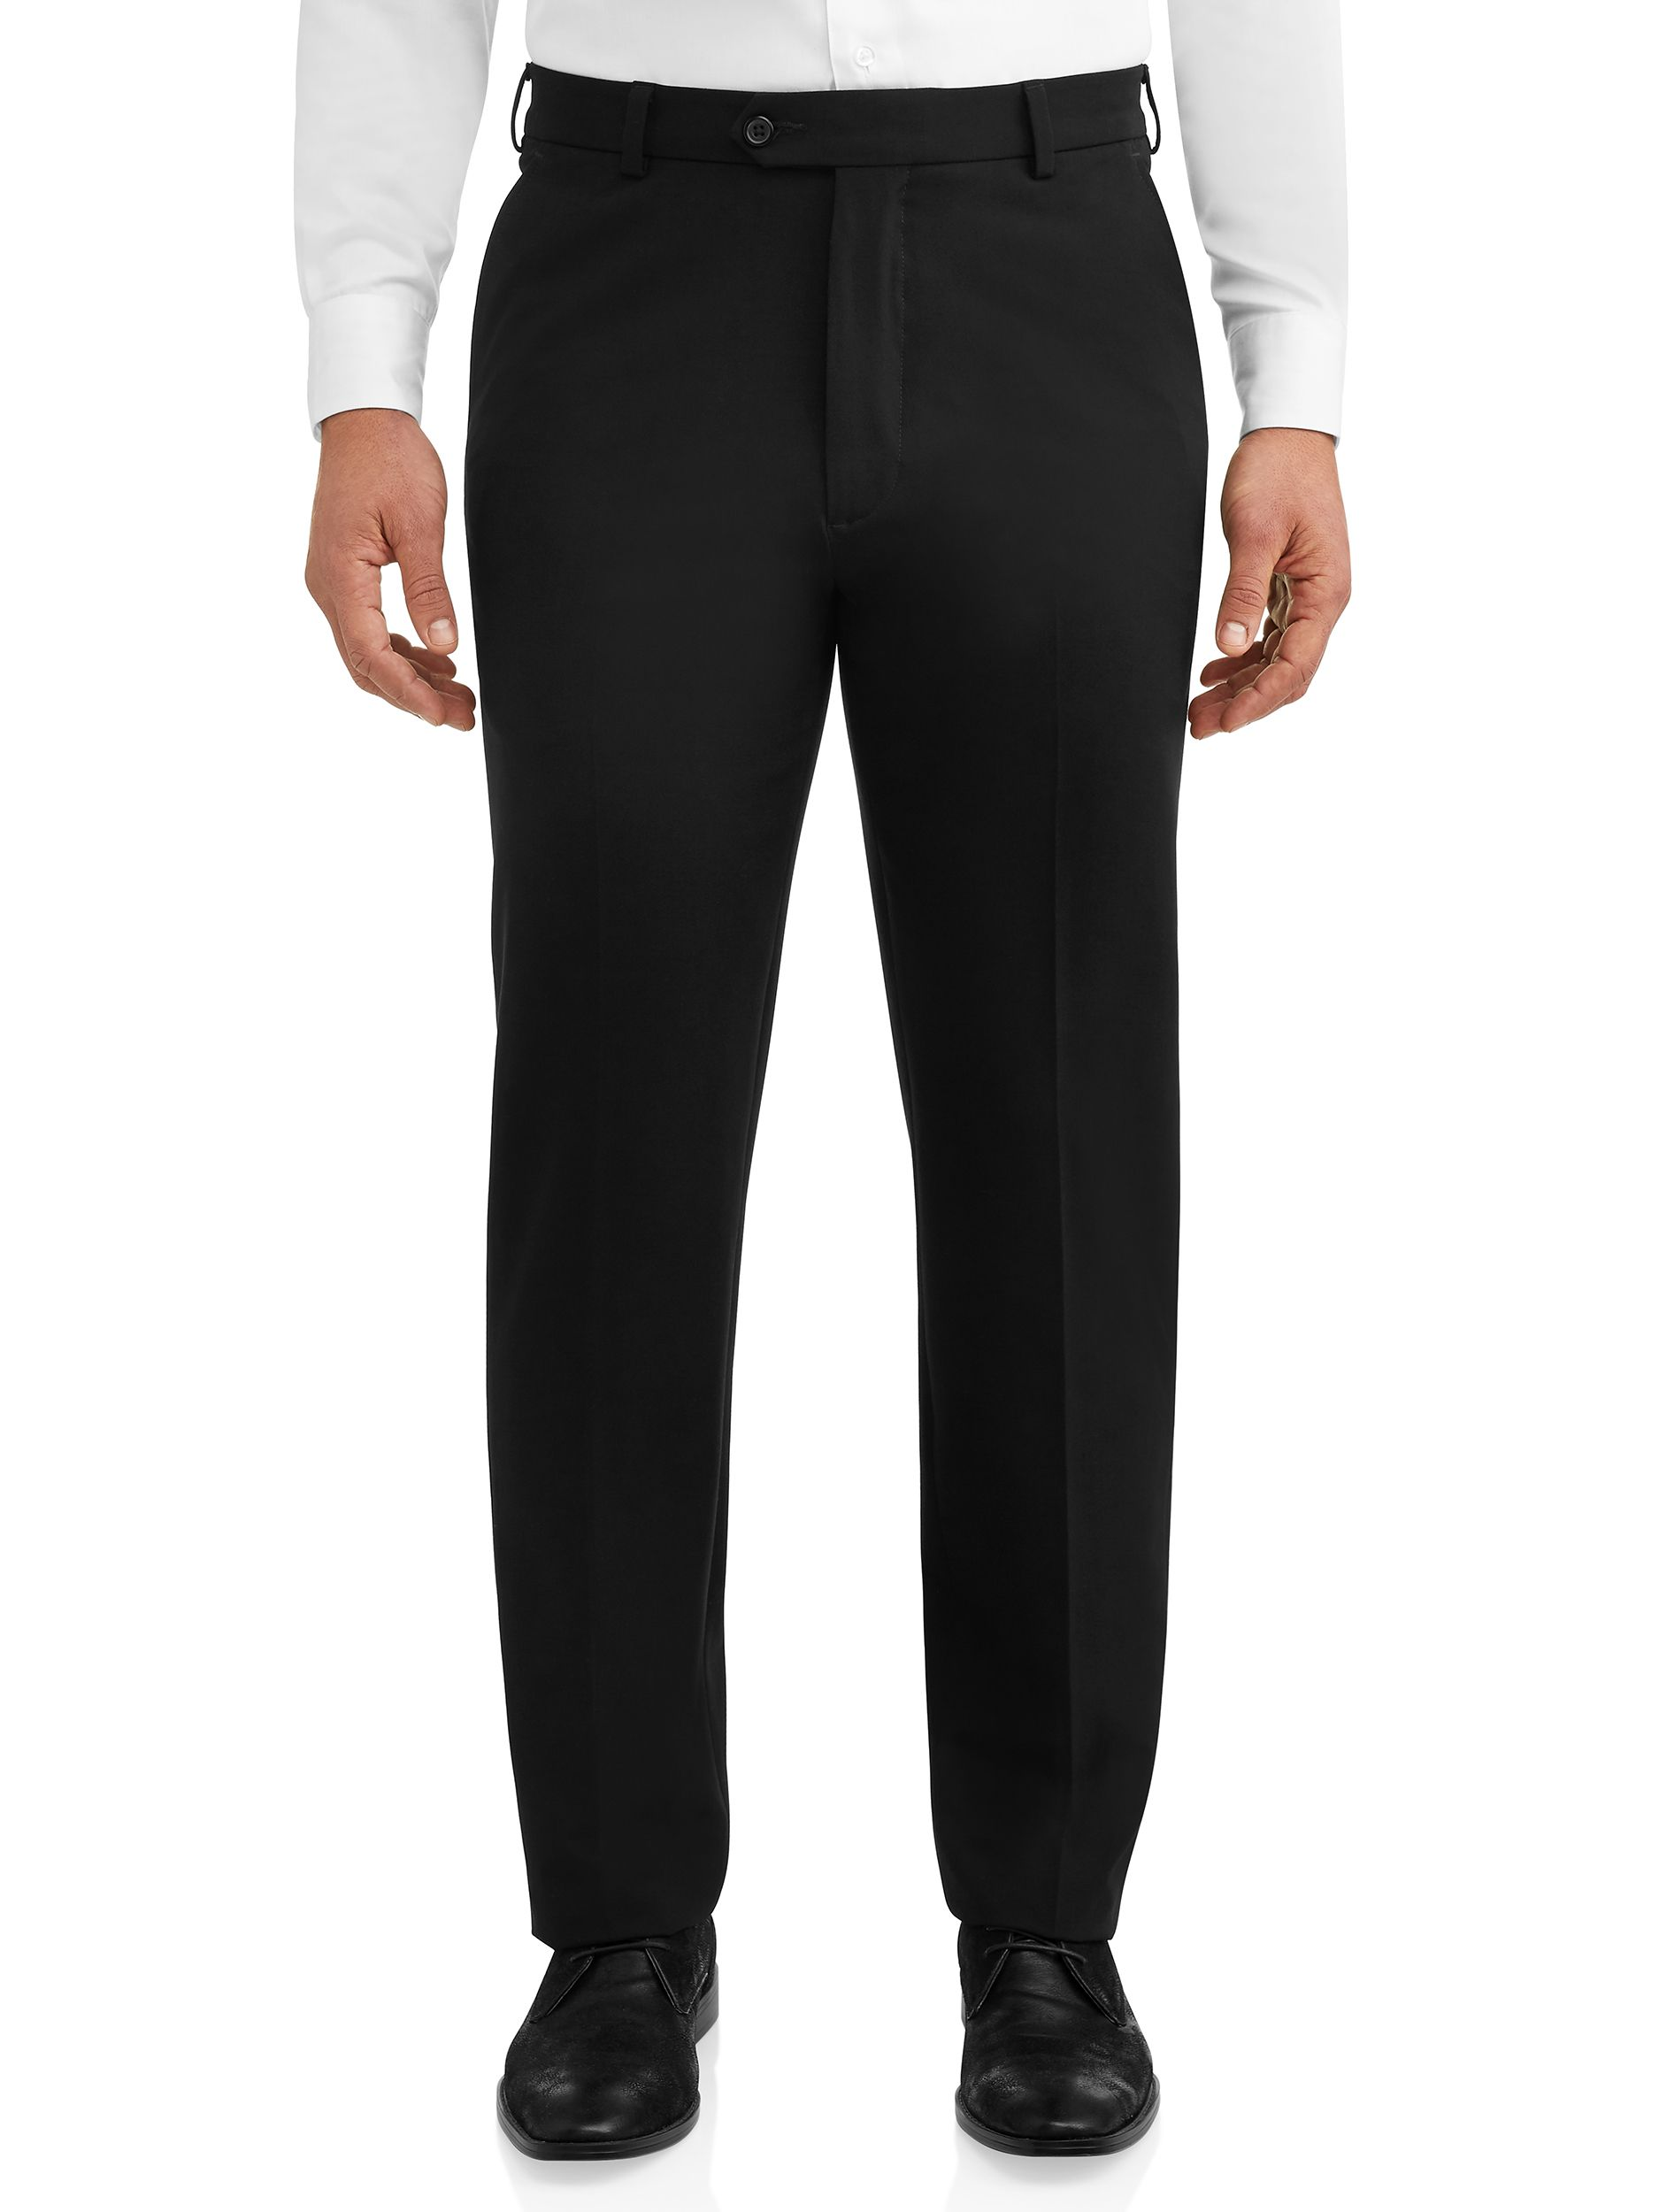 Free 2 Day Shipping On Qualified Orders Over 35 Buy George Men S Premium Comfort Stretch Flat Front Suit Pant At Walmart Mens Dress Pants Men Dress Suit Pant [ 2500 x 1875 Pixel ]